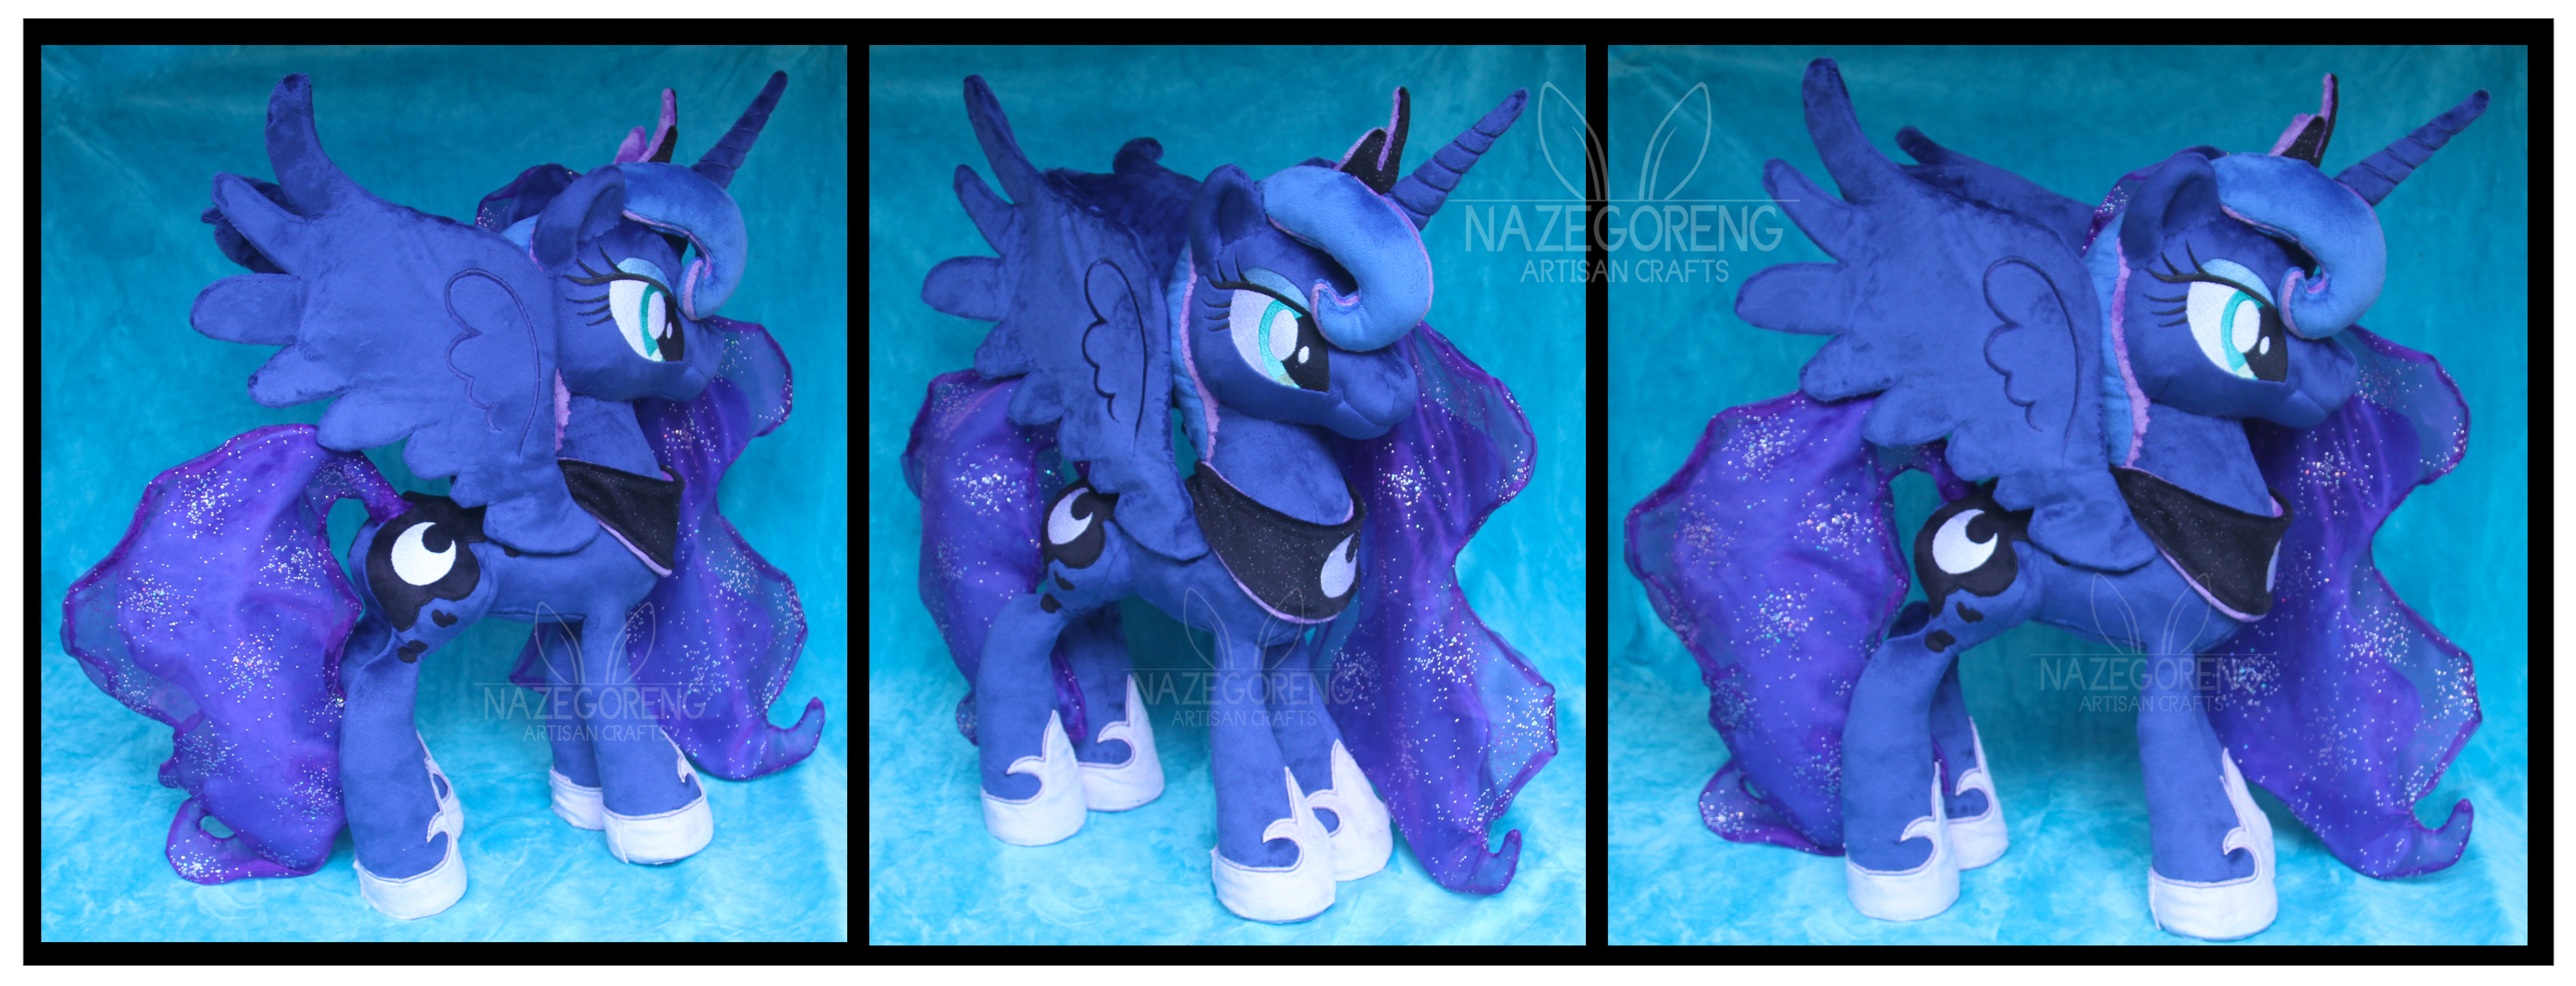 S2 Princess Luna Custom Plush by Nazegoreng